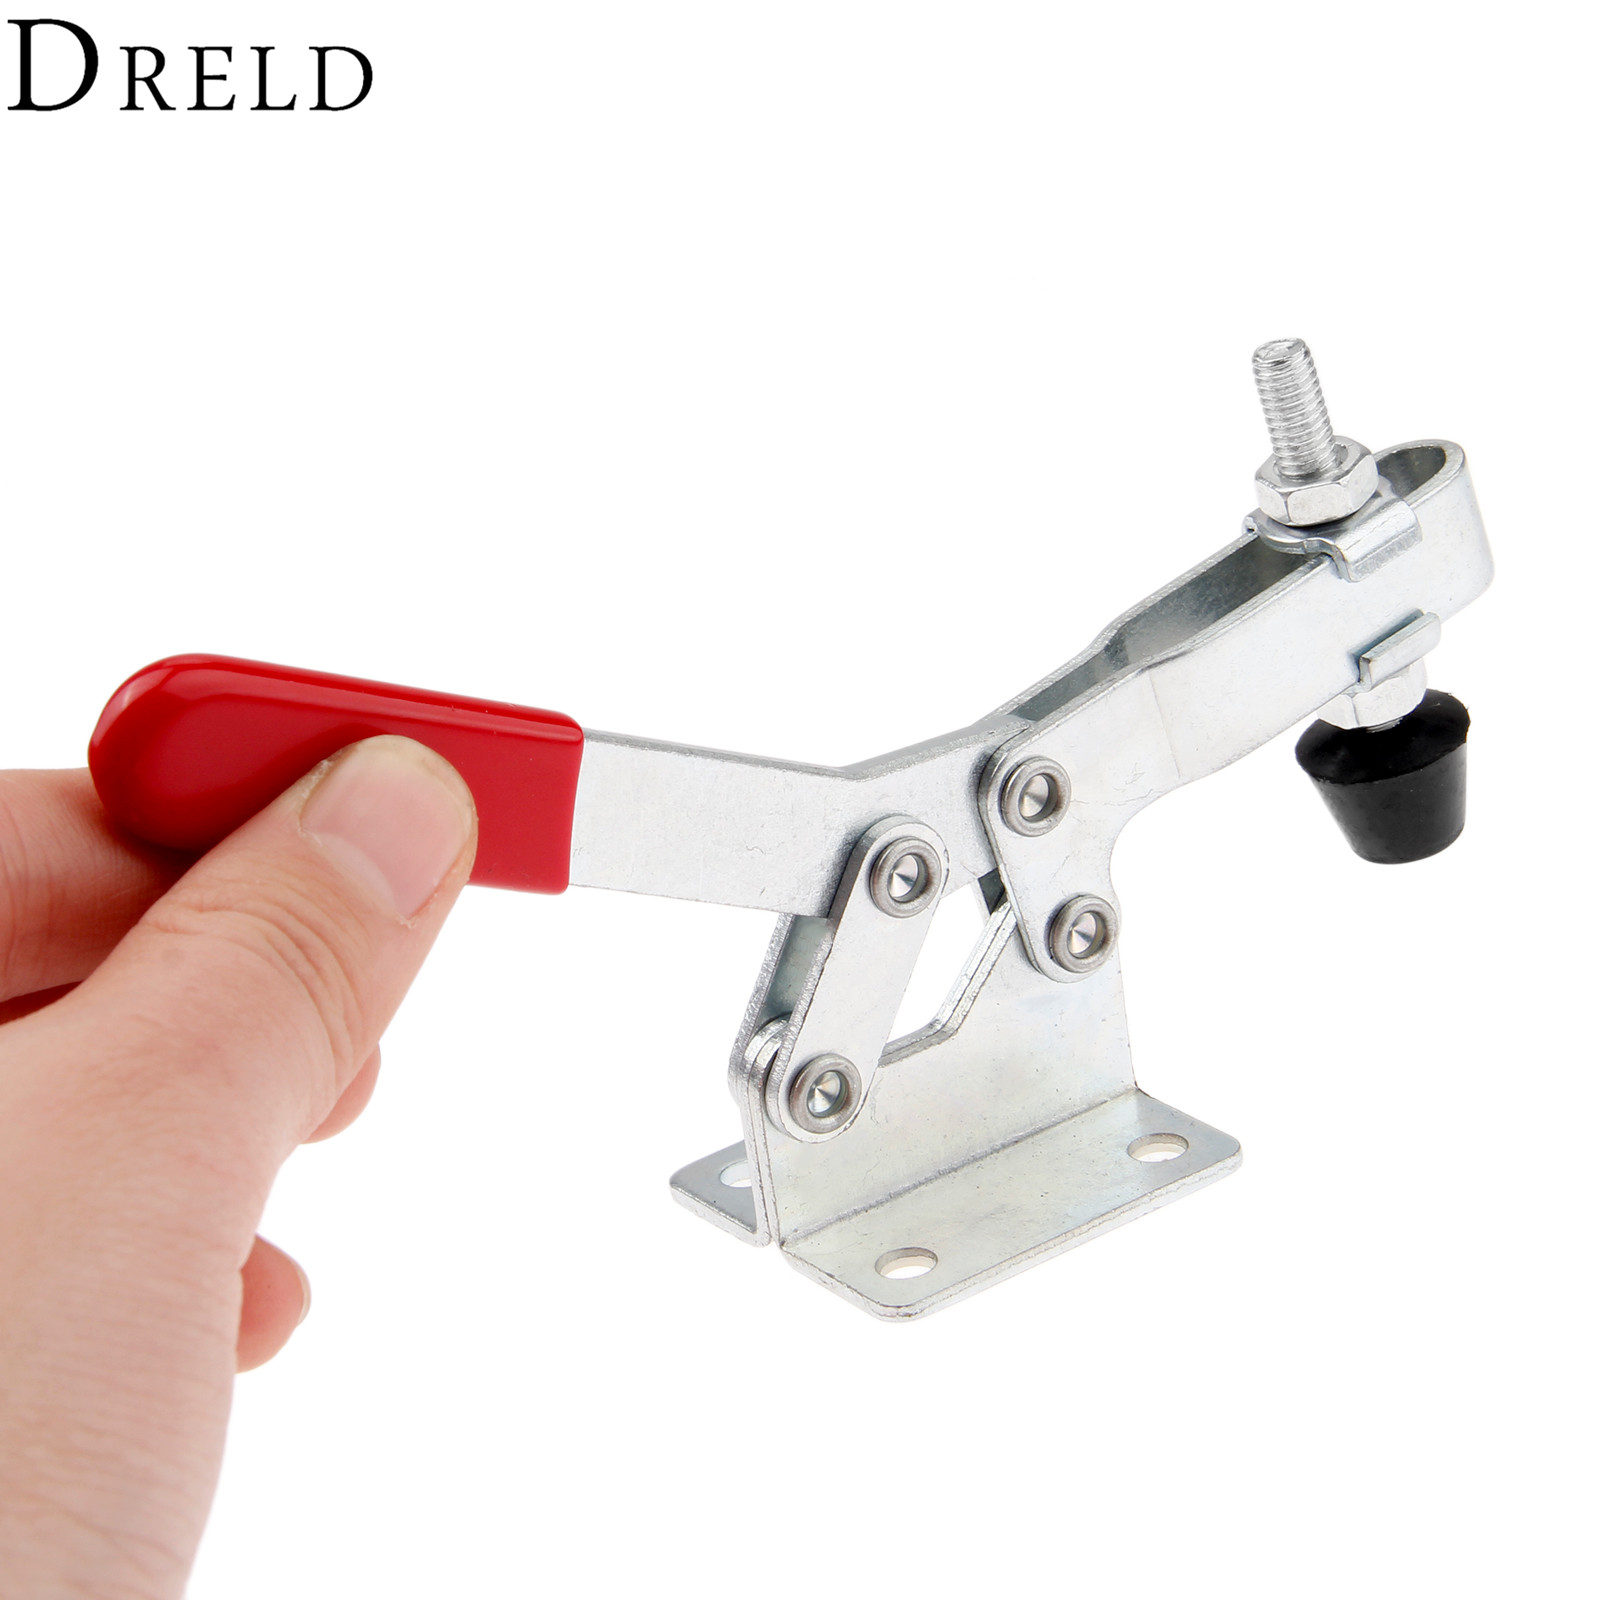 DRELD GH-203-F Horizontal Toggle Clamp Clip 227Kg/ 500 Lbs Quick Holding Capacity Fixed Bar Flange Base Toggle Clamp Hand Tool